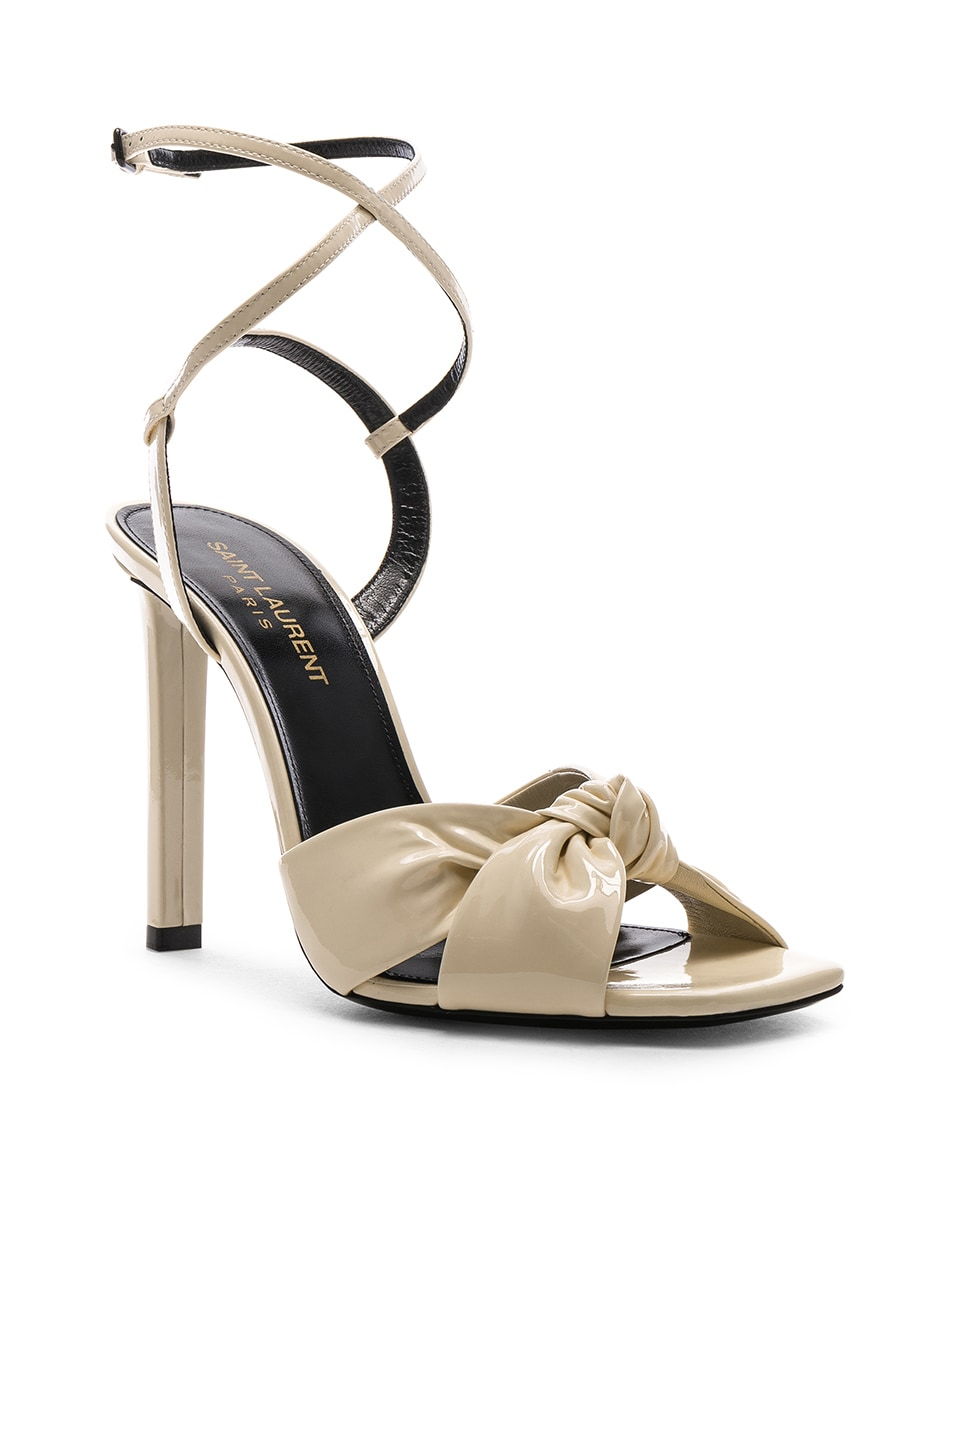 Image 2 of Saint Laurent Patent Amy Ankle Strap Sandals in Porcelain